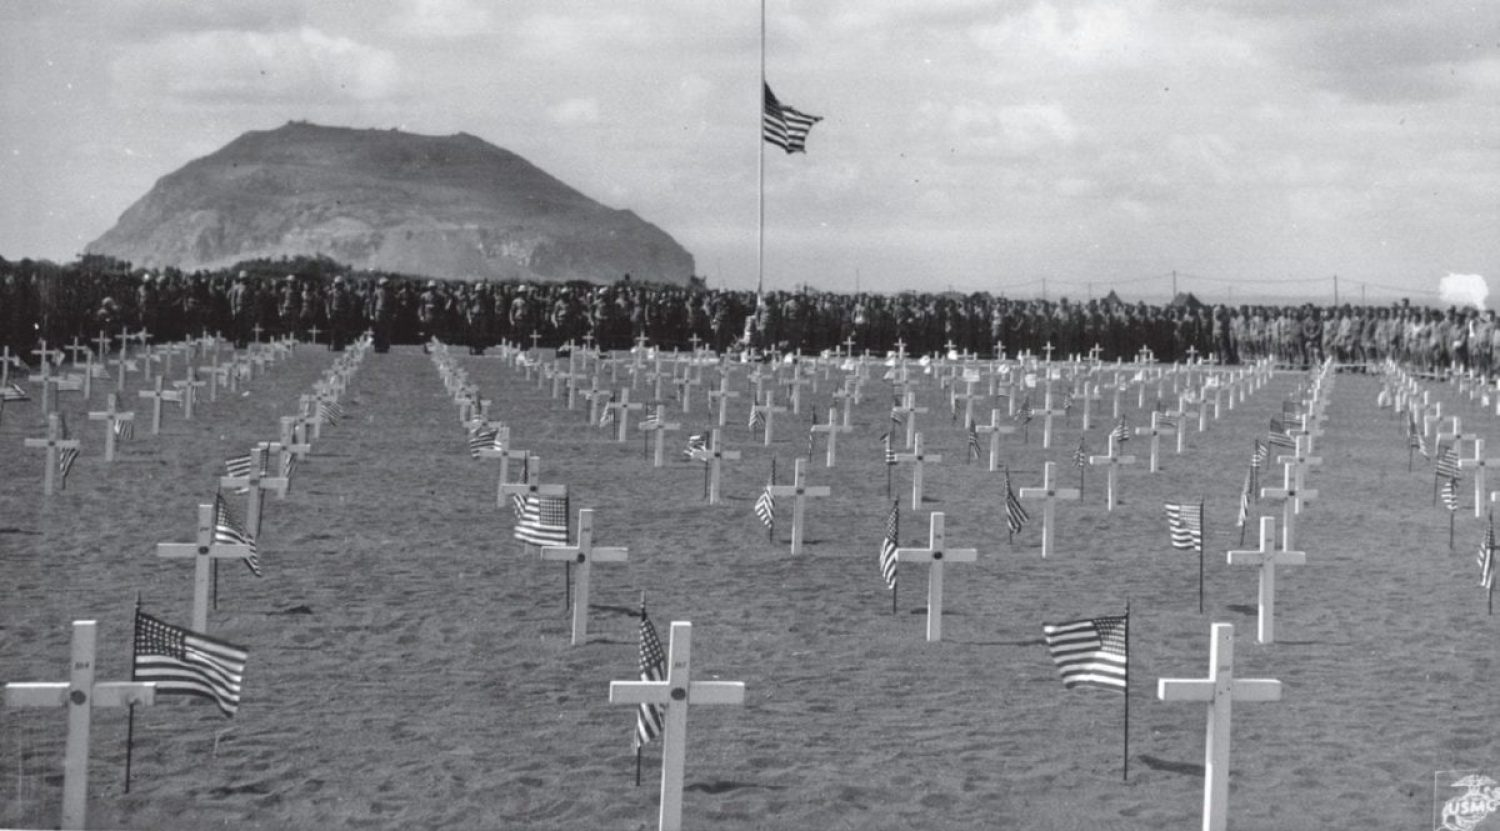 At the March 21, 1945 dedication of the 5th Marine Division cemetery on Iwo Jima, the cemetery flag is raised. The 5th Division had lost 1,500 men killed or wounded by the end of just the second day of fighting on the island. U.S. MARINE CORPS HISTORICAL CENTER